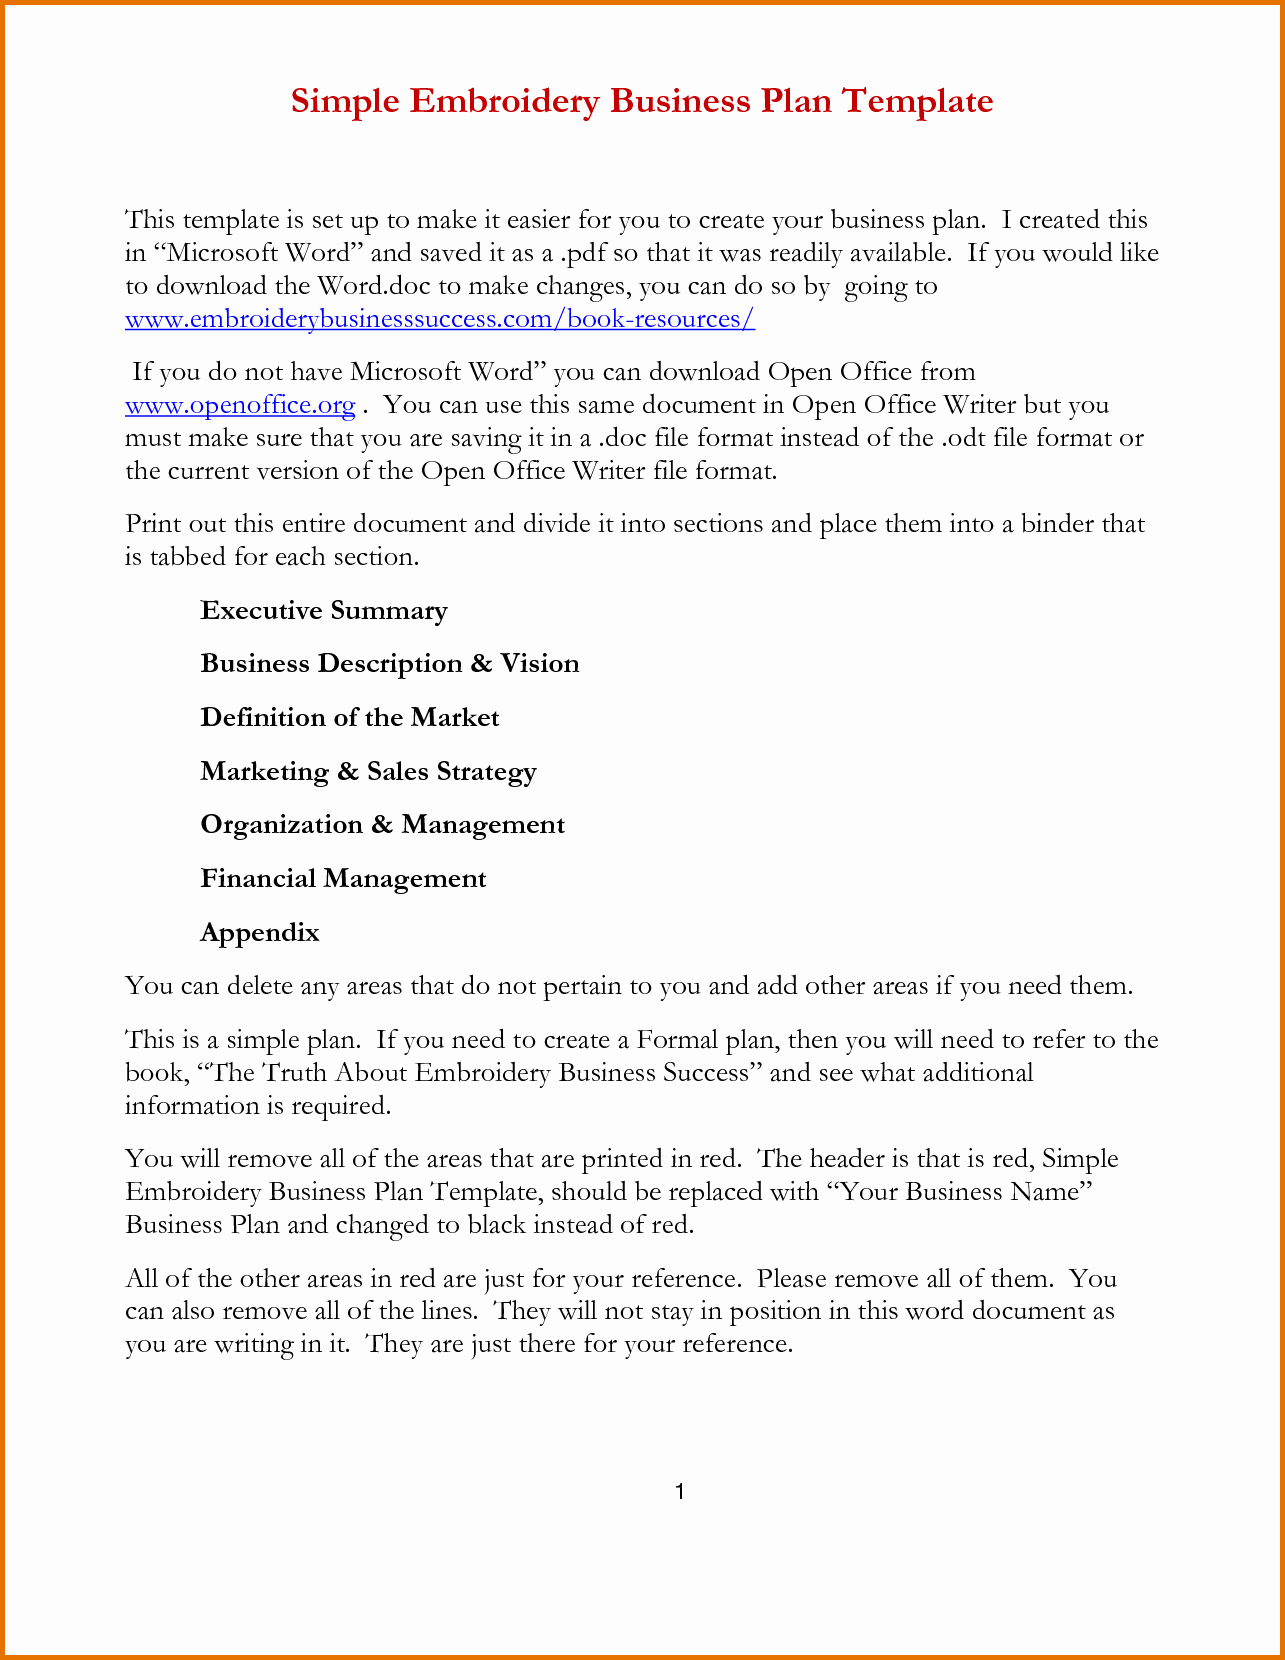 Simple Business Plan Template Wordreference Letters Words